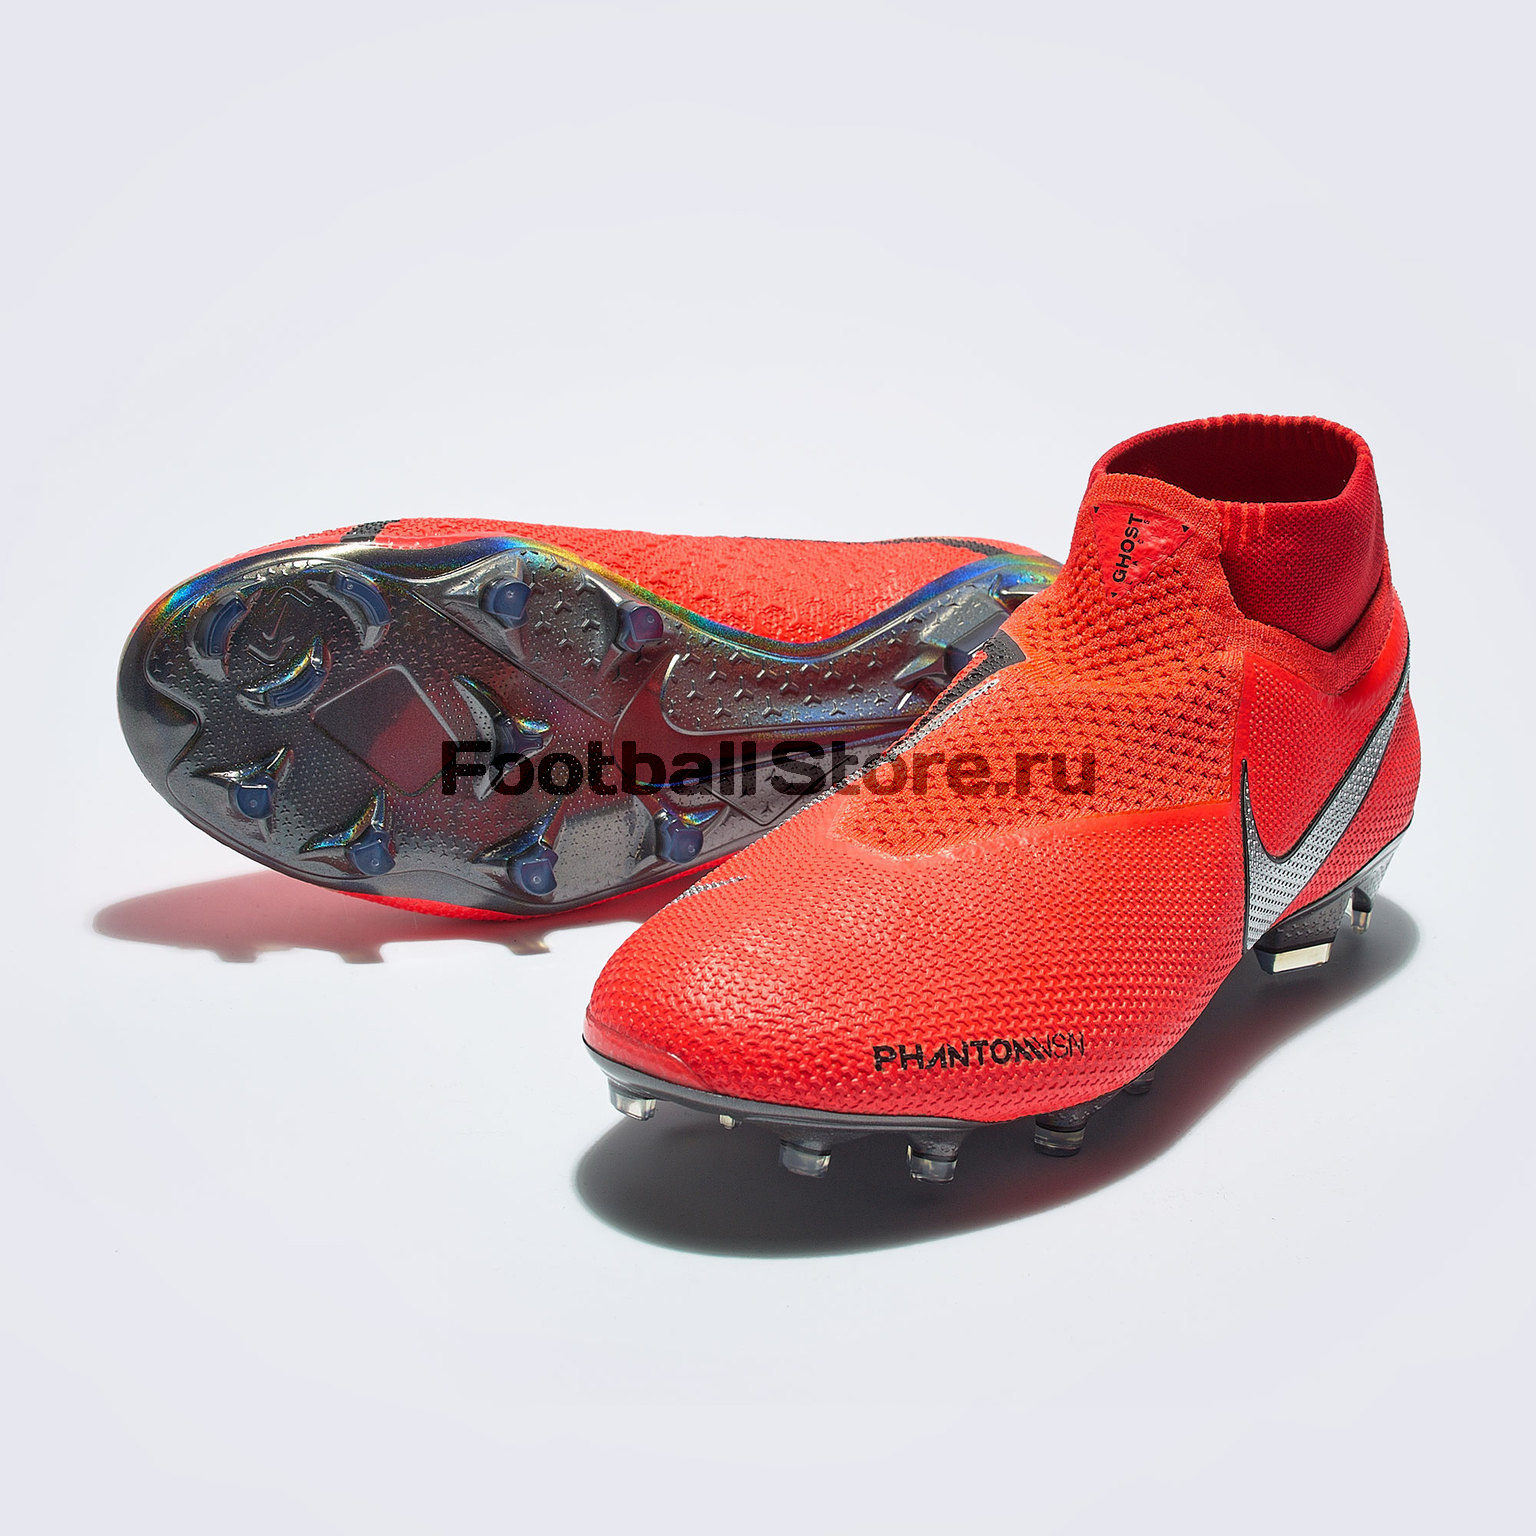 Бутсы Nike Phantom Vision Elite DF FG AO3262-600 бутсы nike hypervenom 3 elite df fg aj3803 600